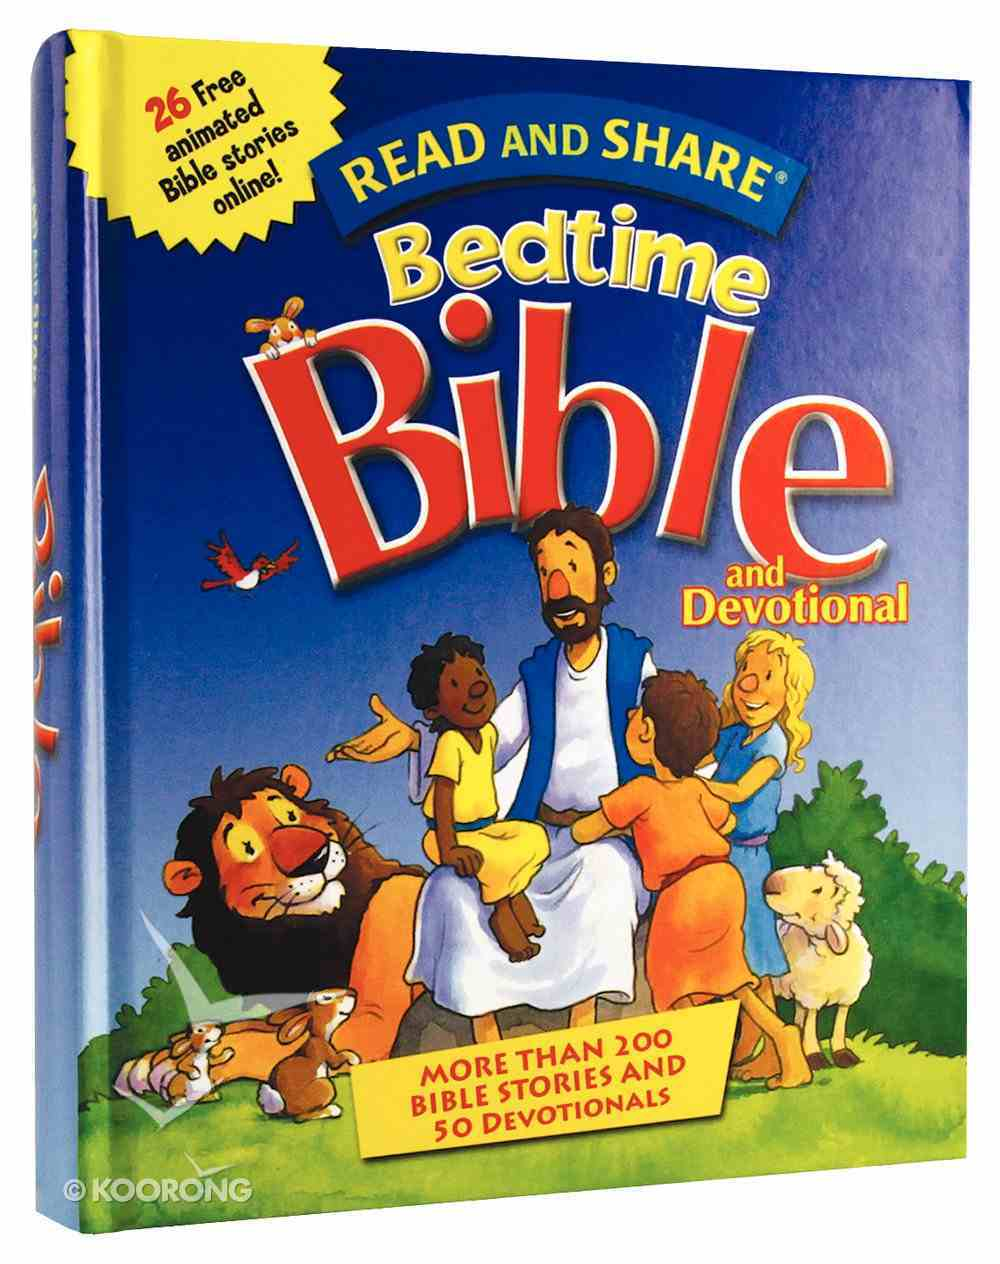 Read and Share Bedtime Bible and Devotional (Read And Share Dvd Series) Hardback